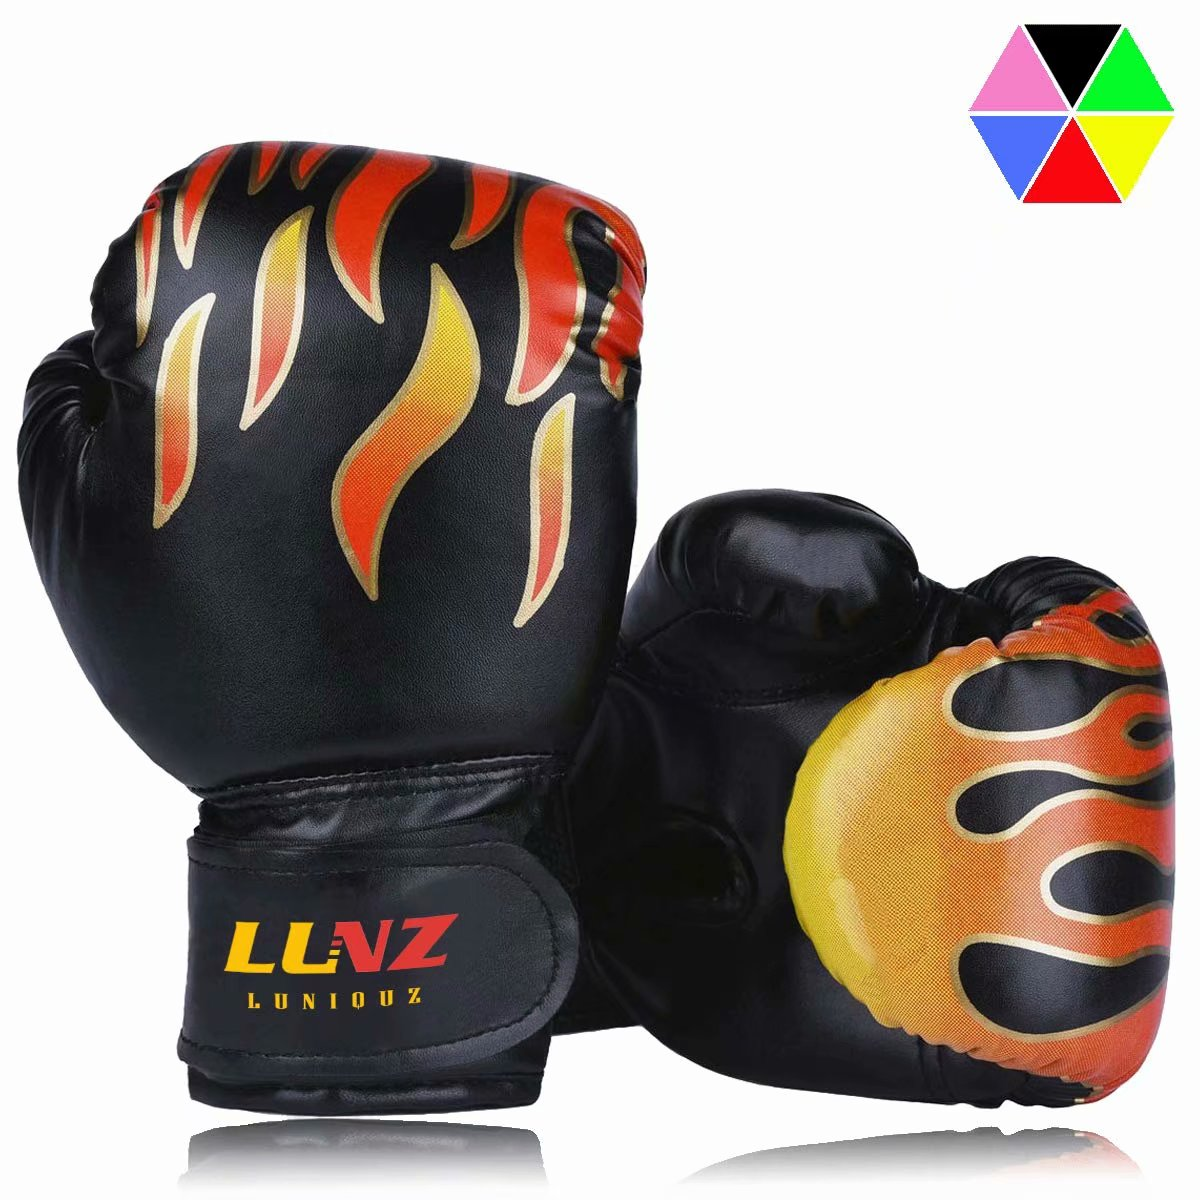 Kickboxing MMA Kids Boxing Gloves Muay Thai Boxing Gloves for Children 5-12 Youth Boys Girls Toddler PU Cartoon Sparring Training Boxing Gloves for Punching Bag